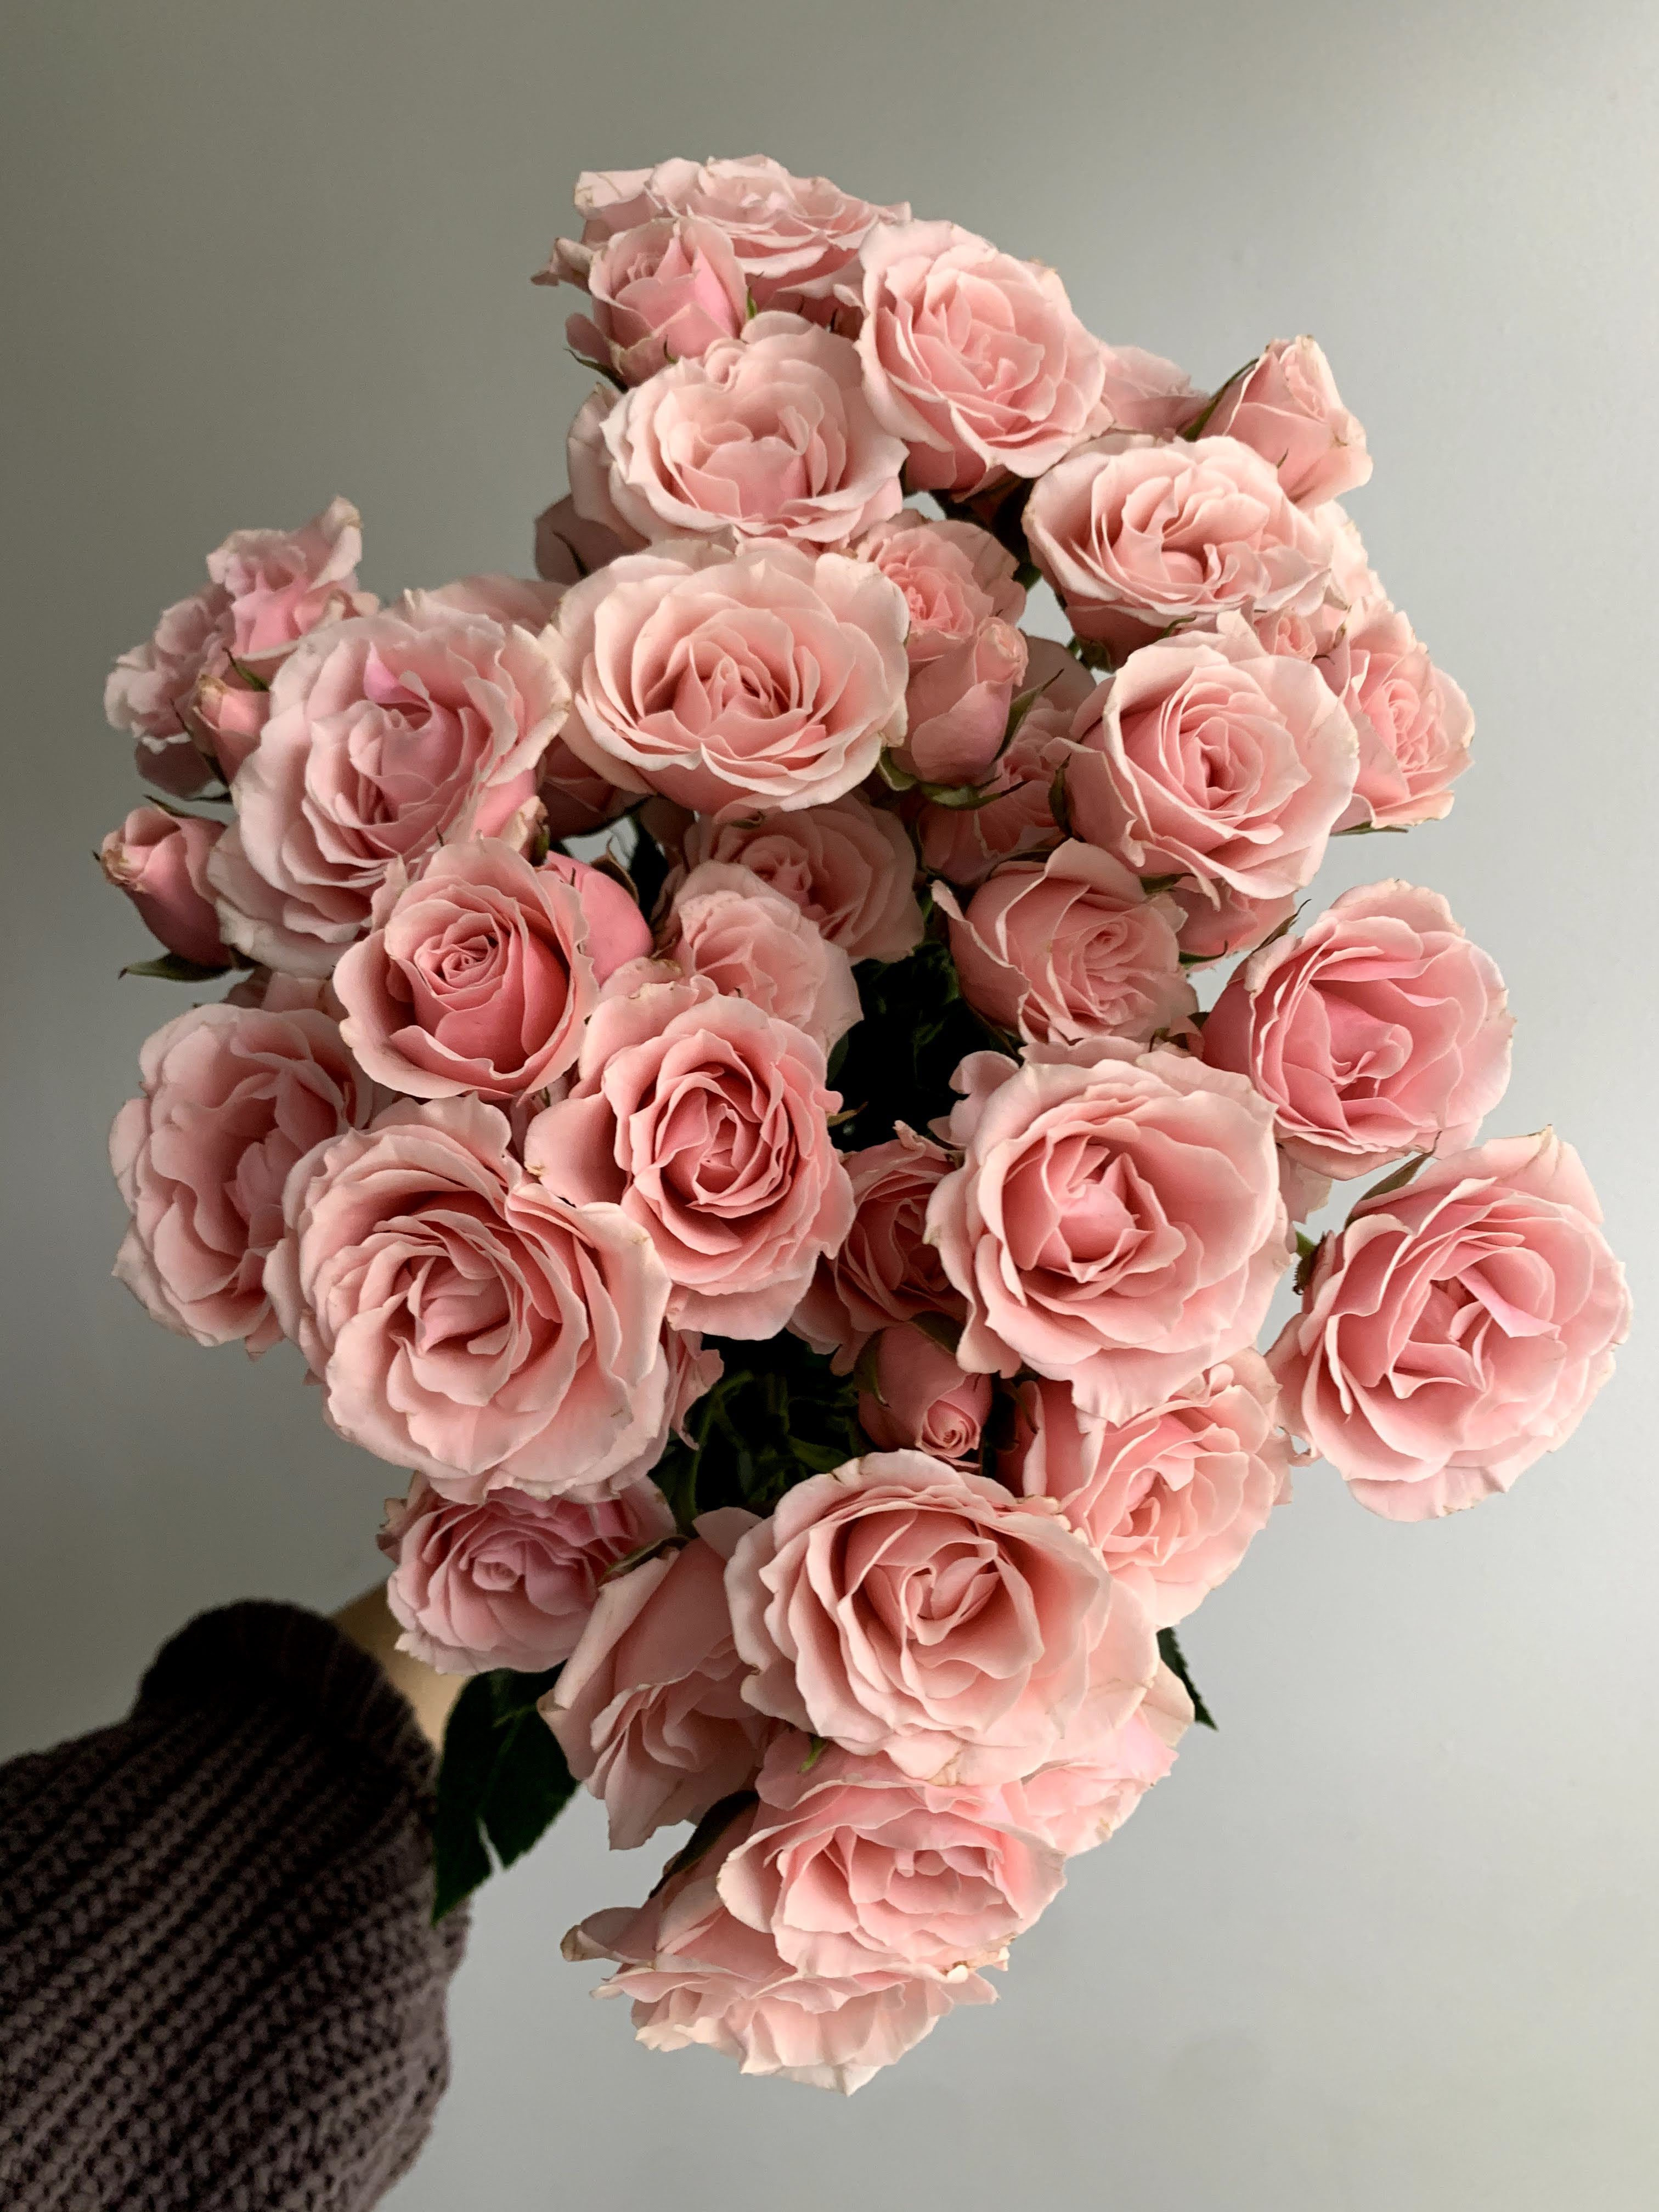 Pink Majolica Spray Roses In 2021 Light Pink Flowers Pink Rose Bouquet Fresh Flower Bouquets